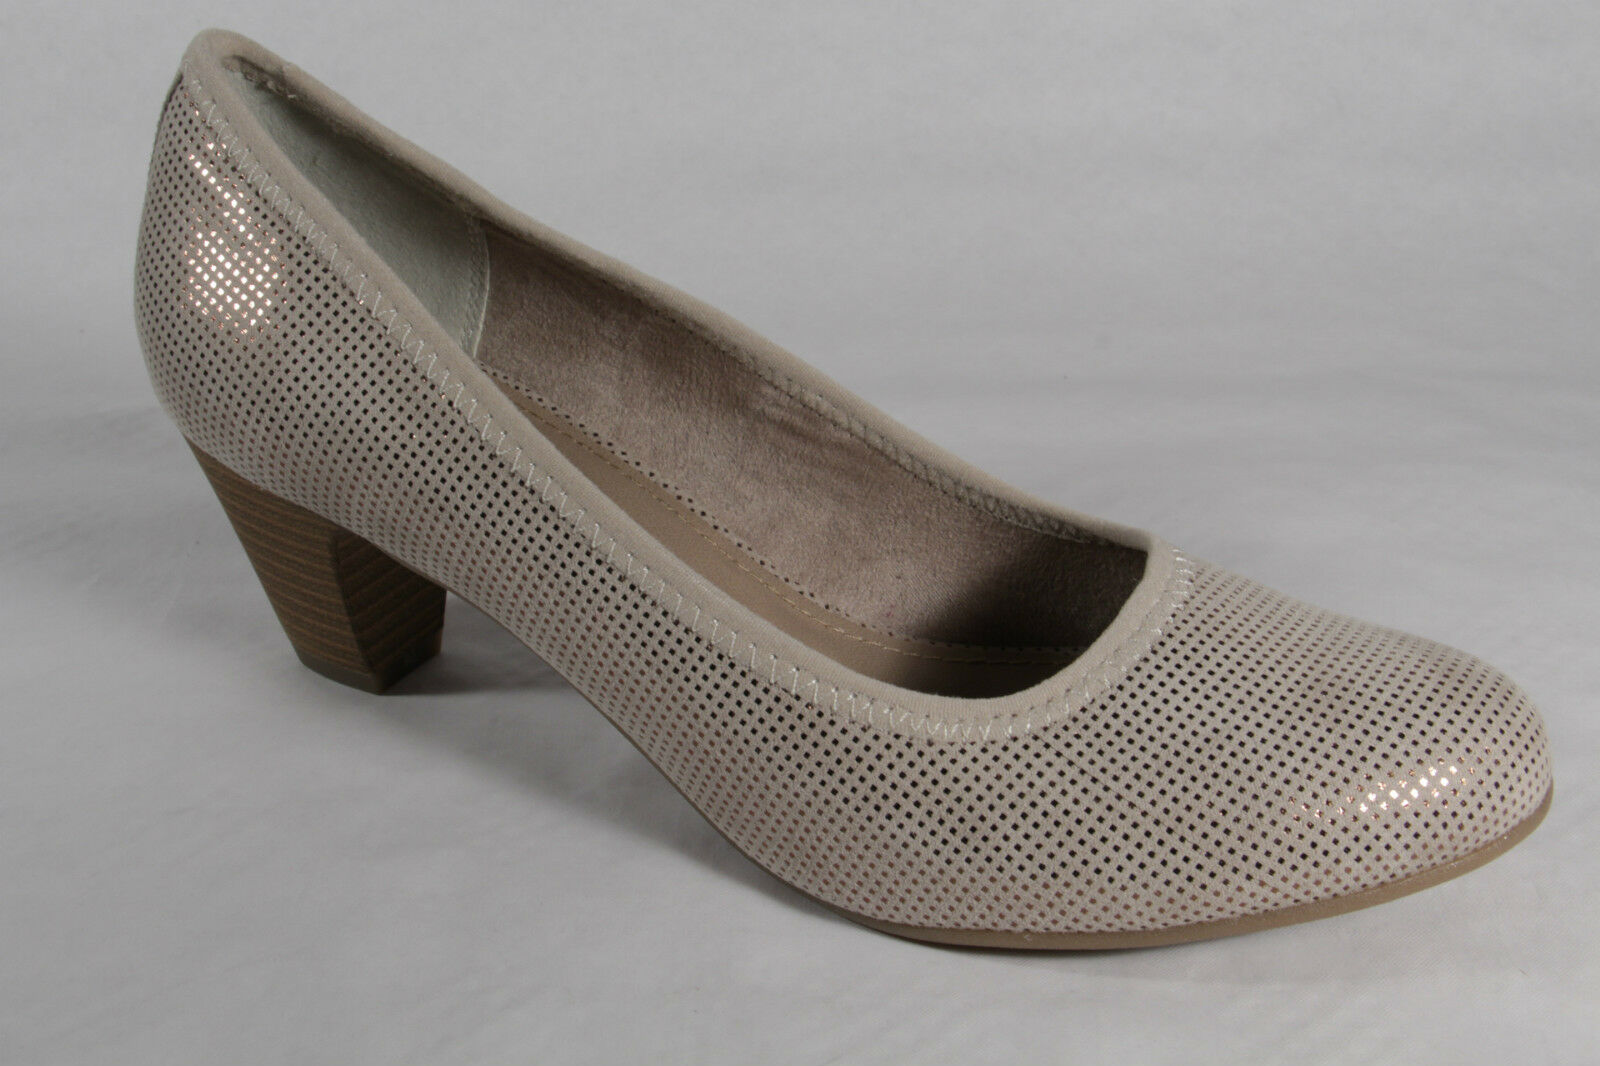 S.Oliver Court shoes Slipper shoes Beige New New New 6785dc